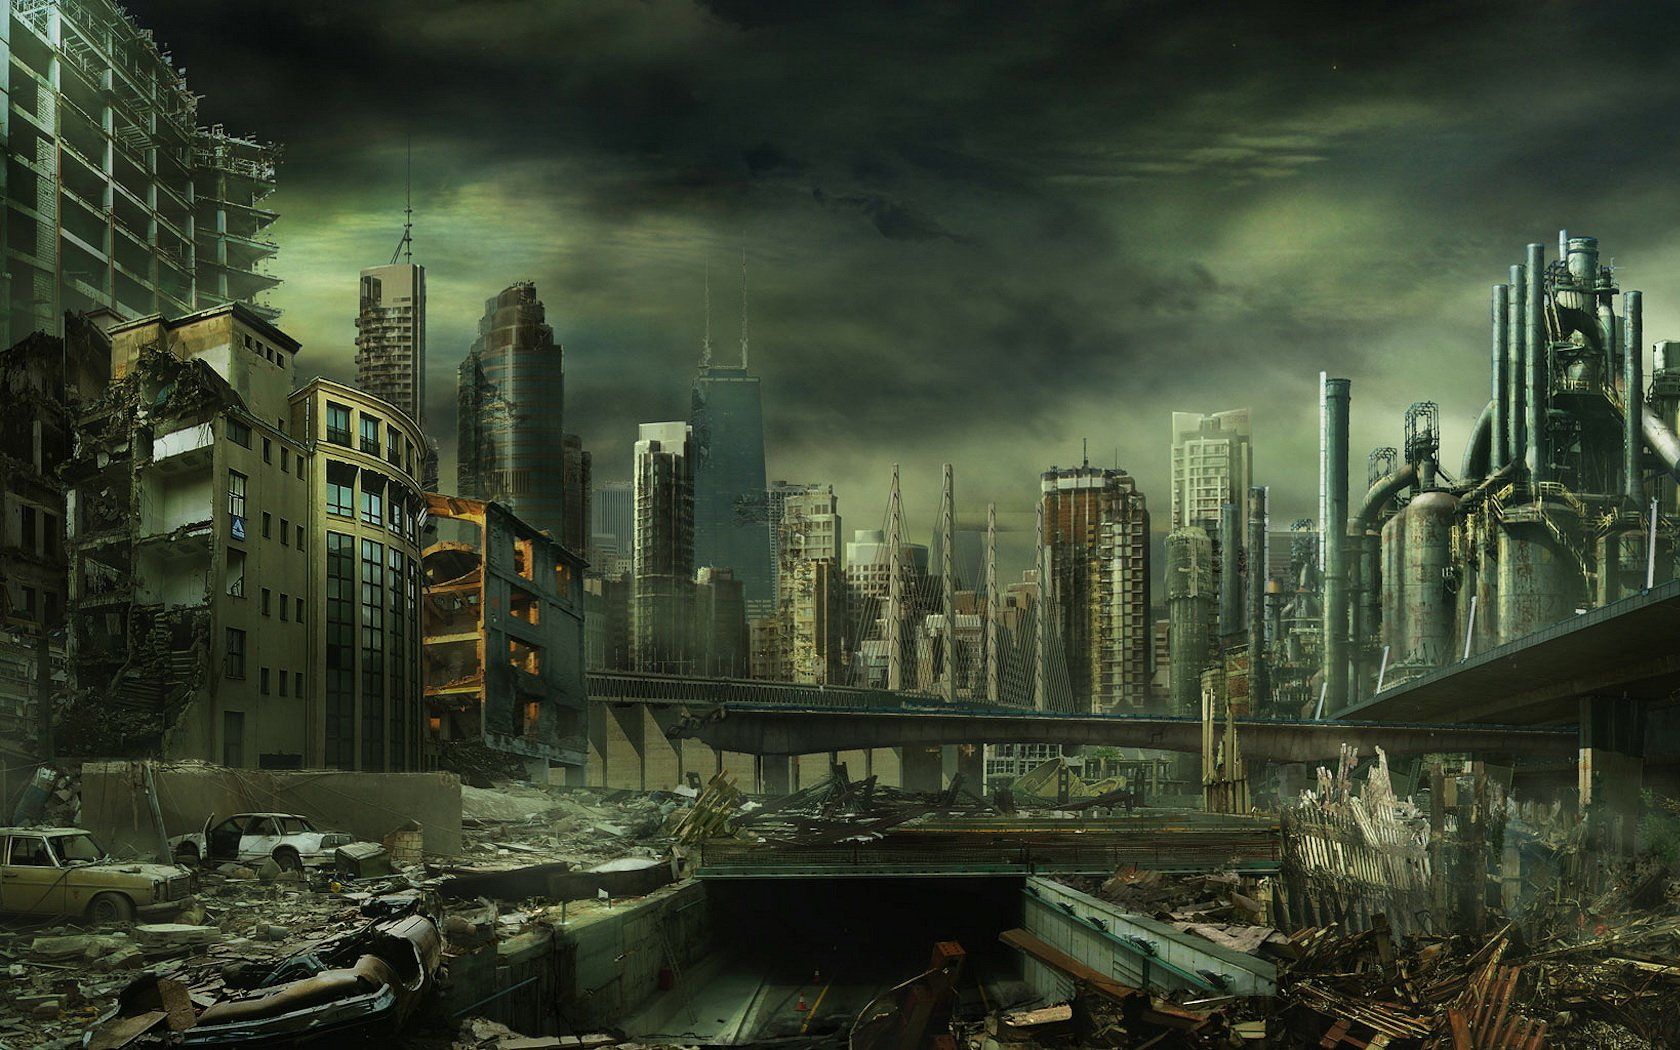 352 post apocalyptic hd wallpapers | background images - wallpaper abyss